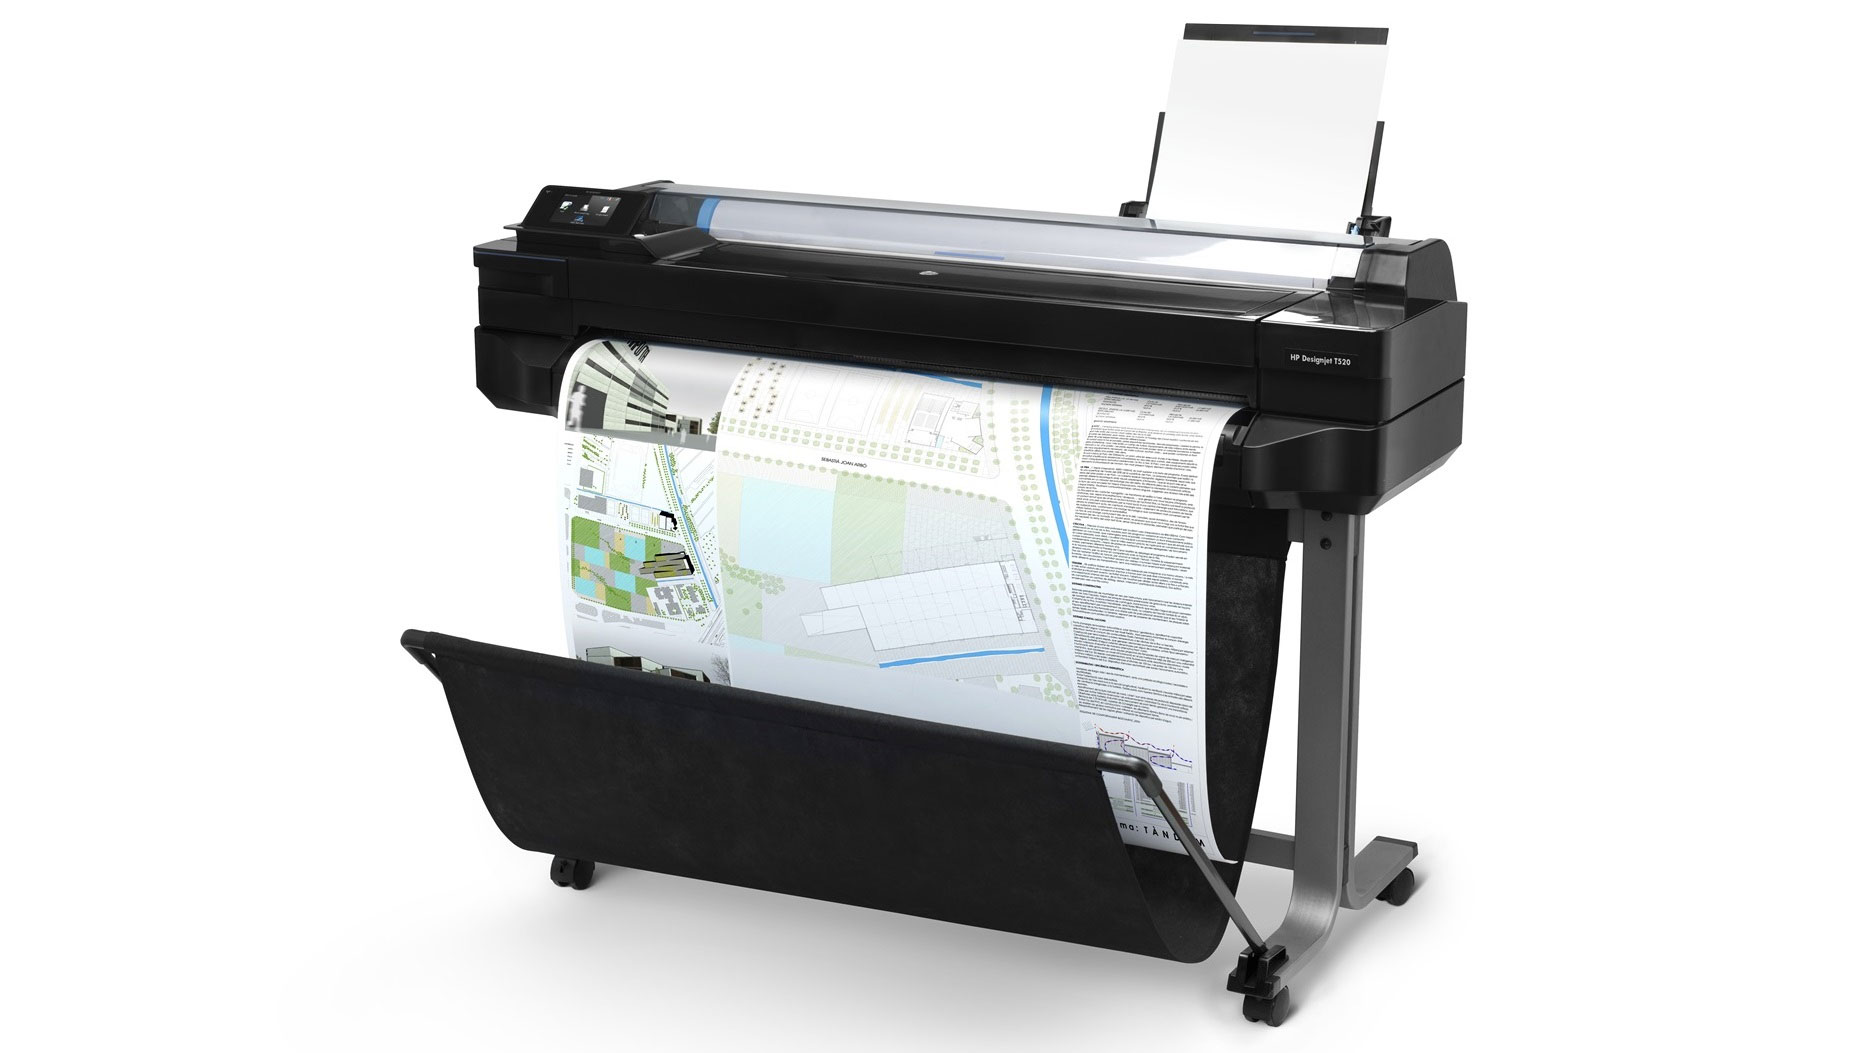 Three high-end printers for serious work - HP Designjet T520